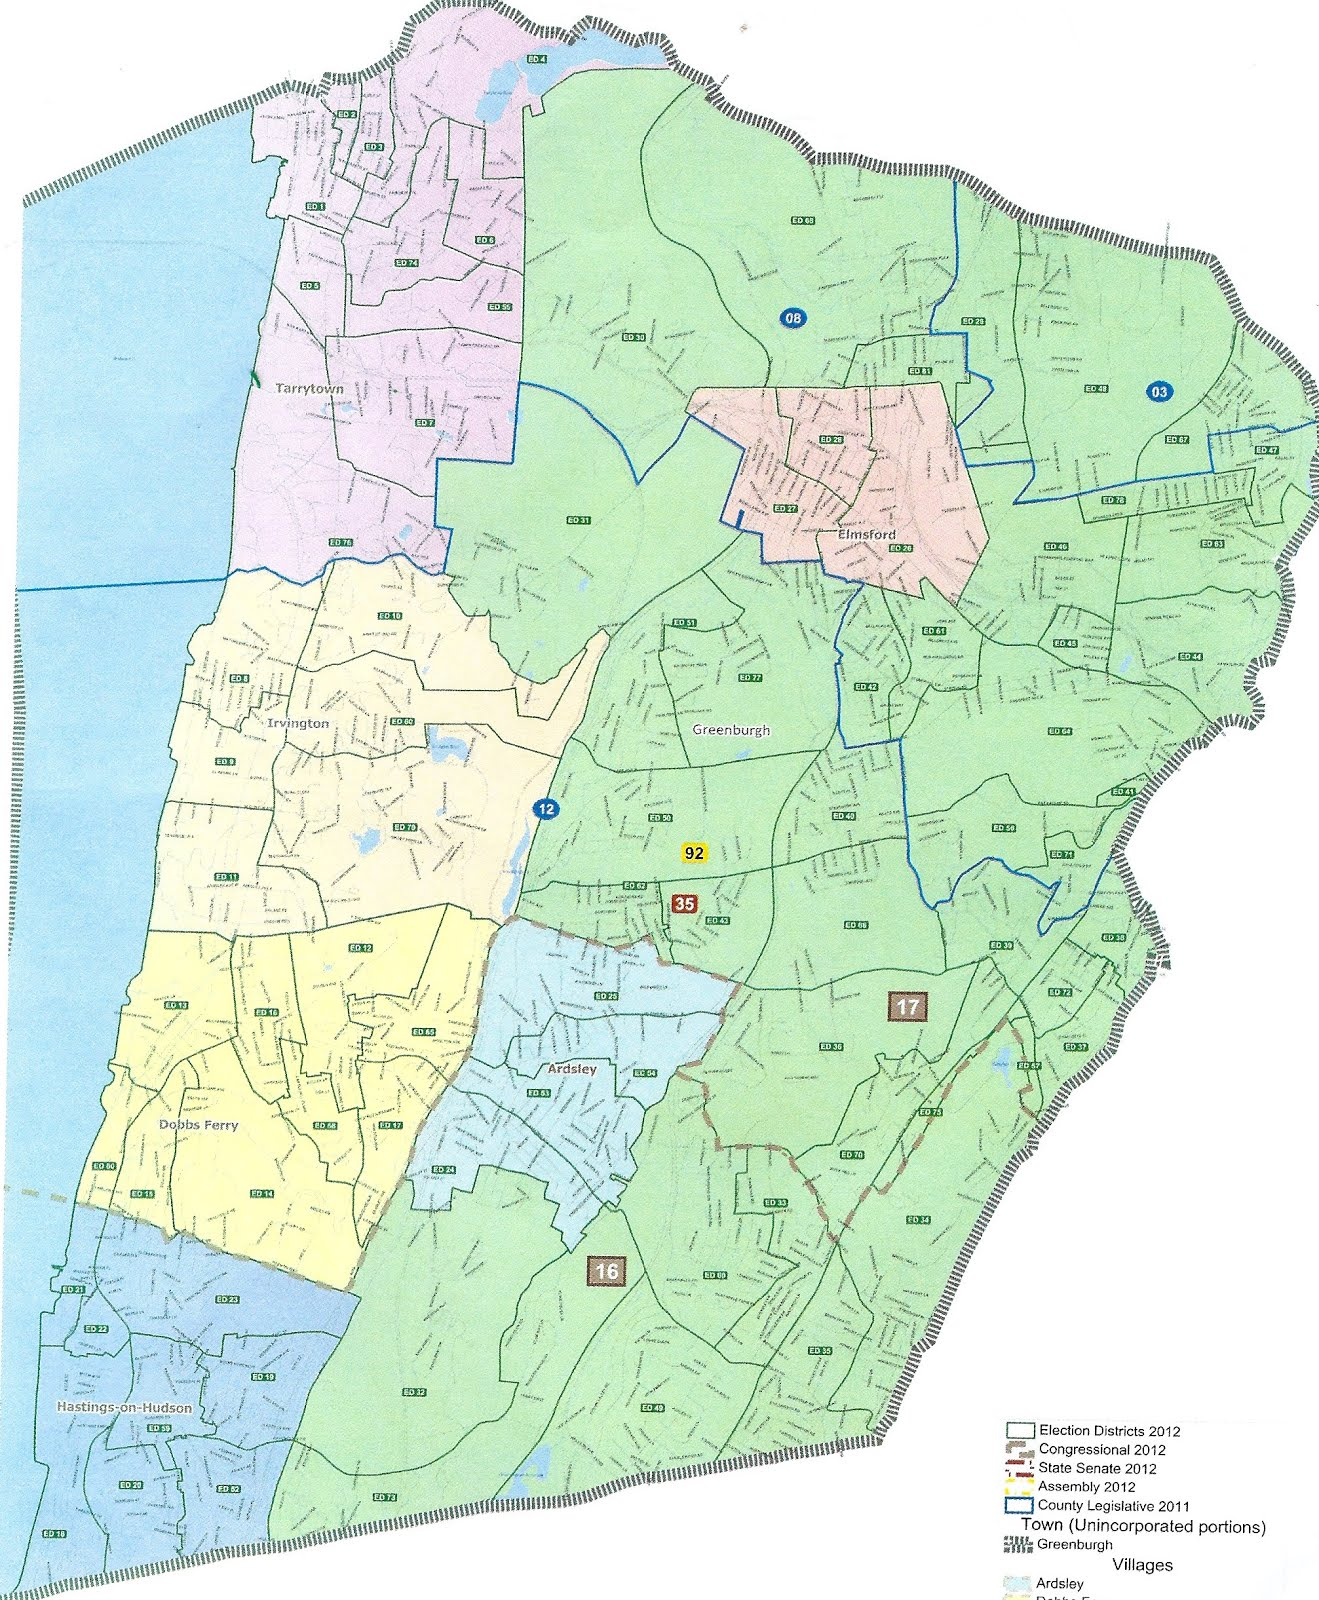 greenburgh election districts map